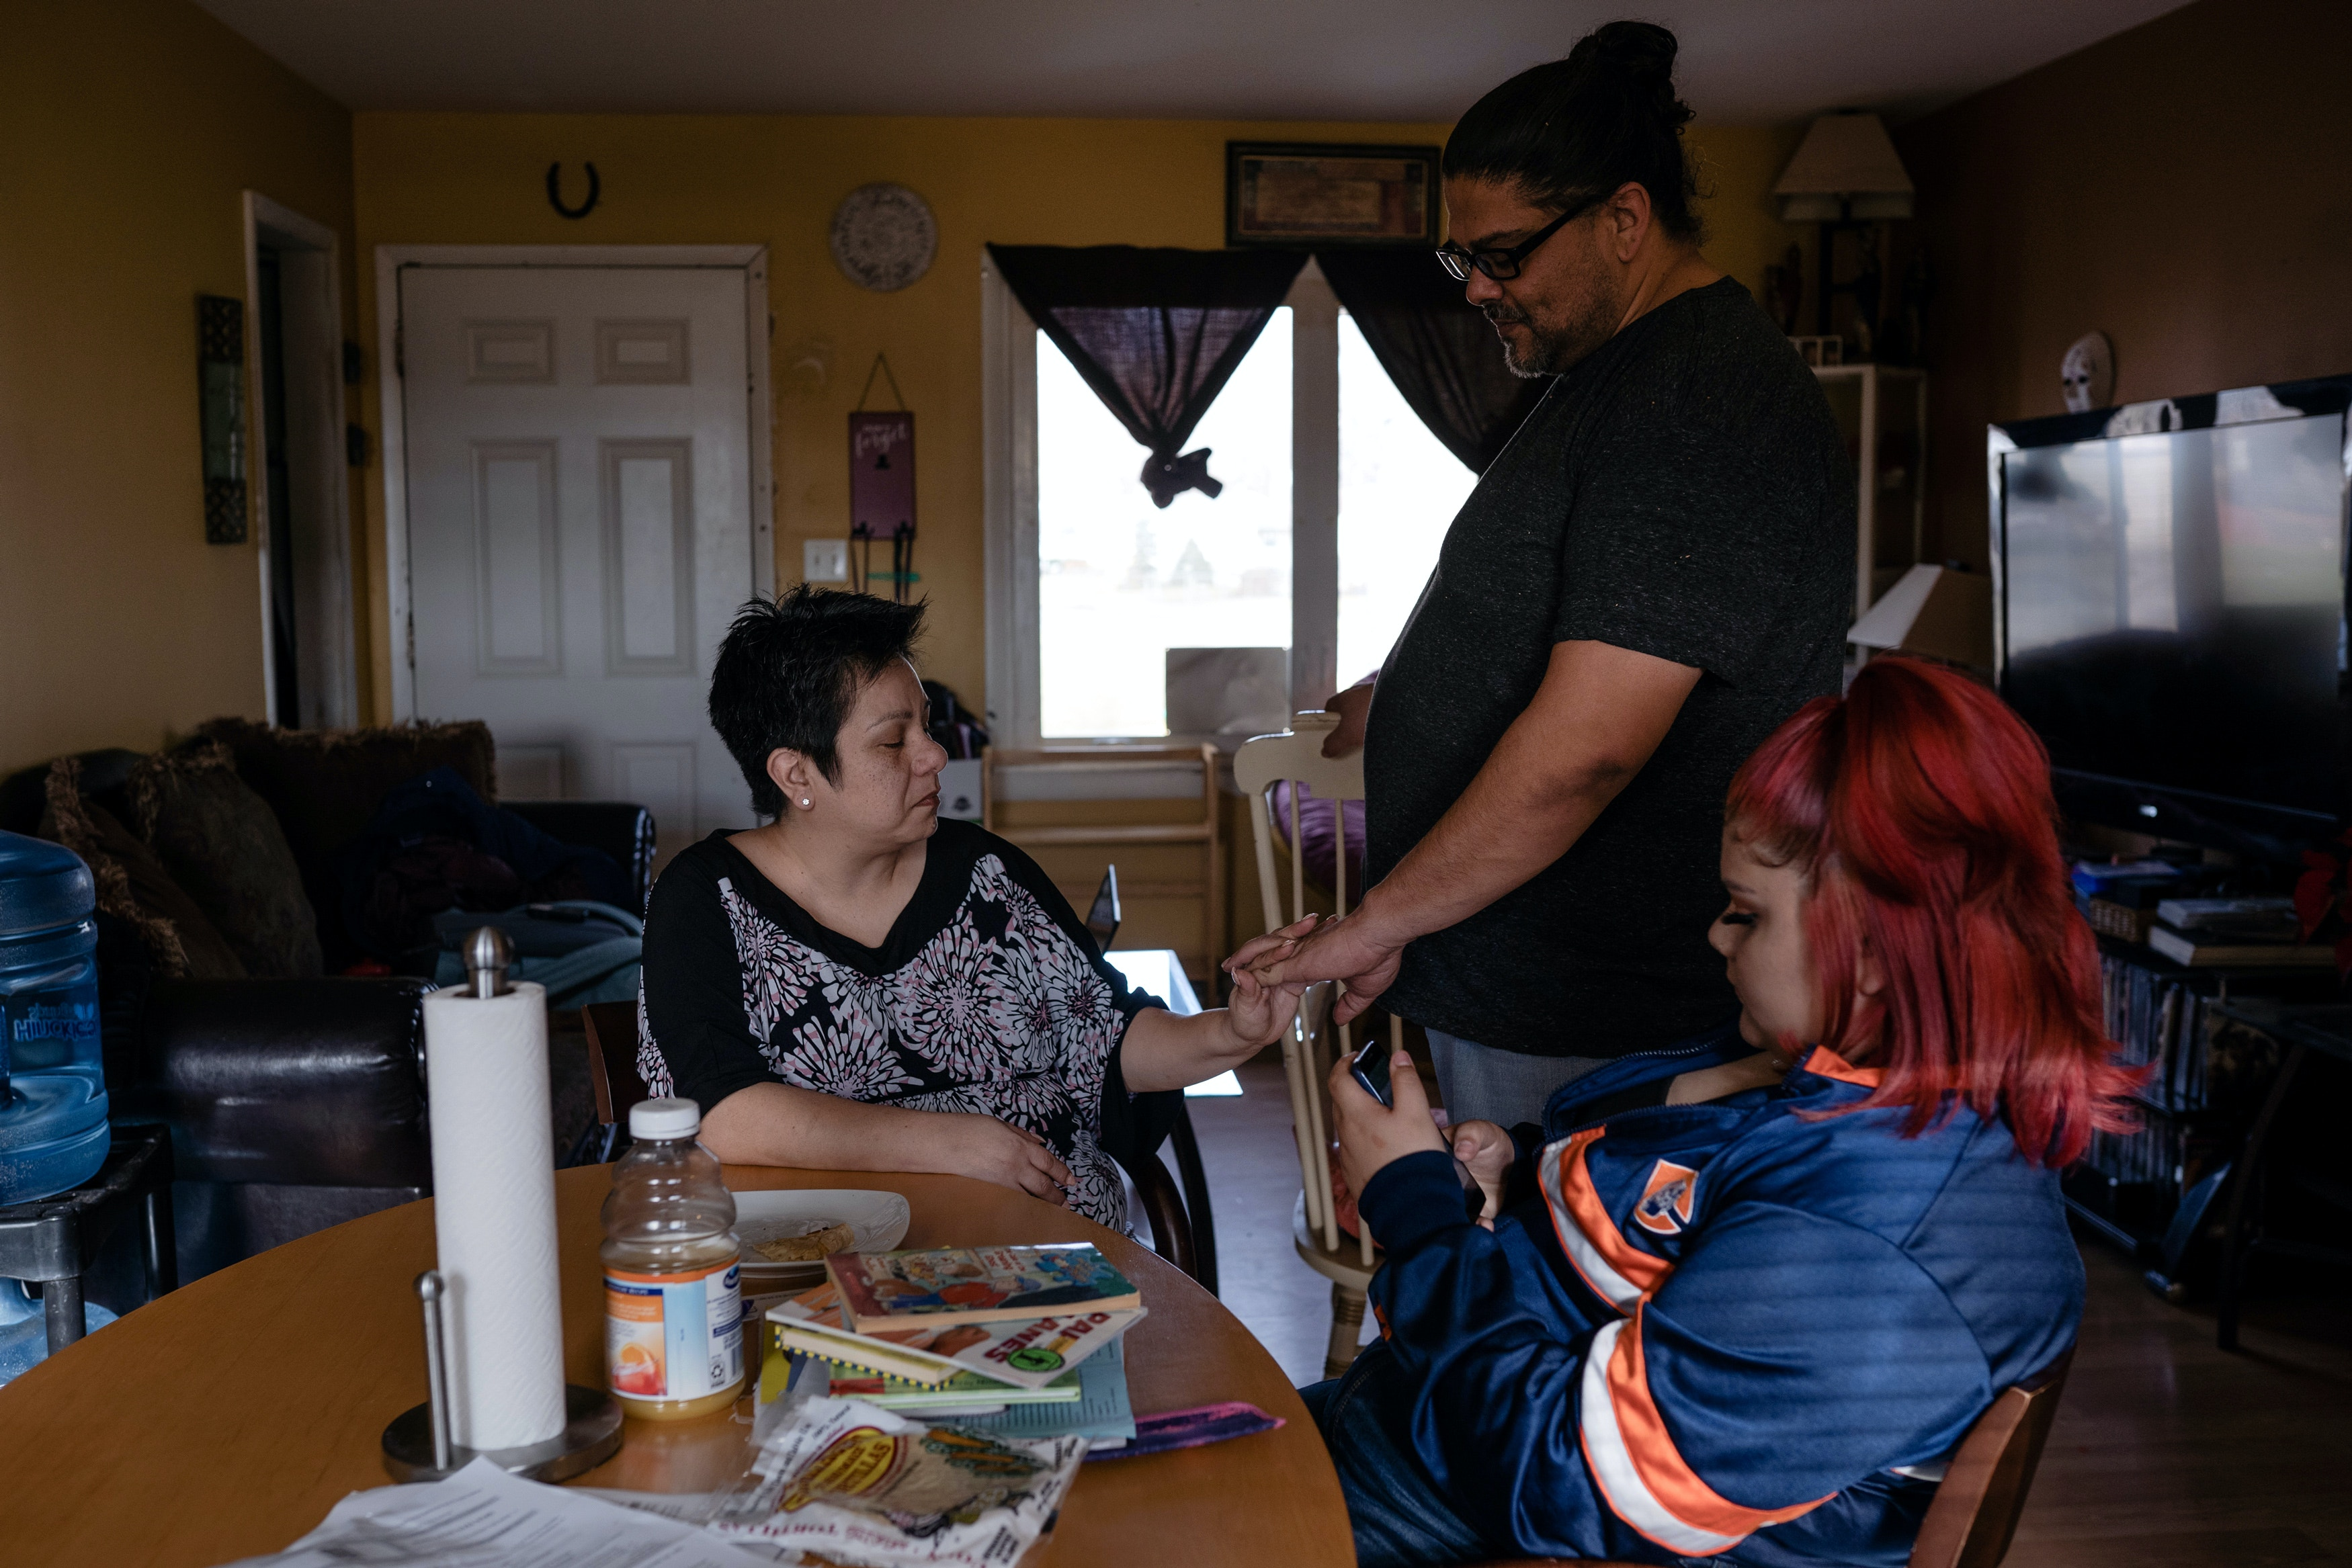 Angela Ramirez, who was diagnosed with breast cancer, and her husband Randy talk while their daughter Ada checks her phone in Waukegan, Ill. on Jan. 2, 2020. The Ramirezes live less than six miles away from two factories that emit ethylene oxide, a gas linked to cancer. Pat Nabong for The Intercept.